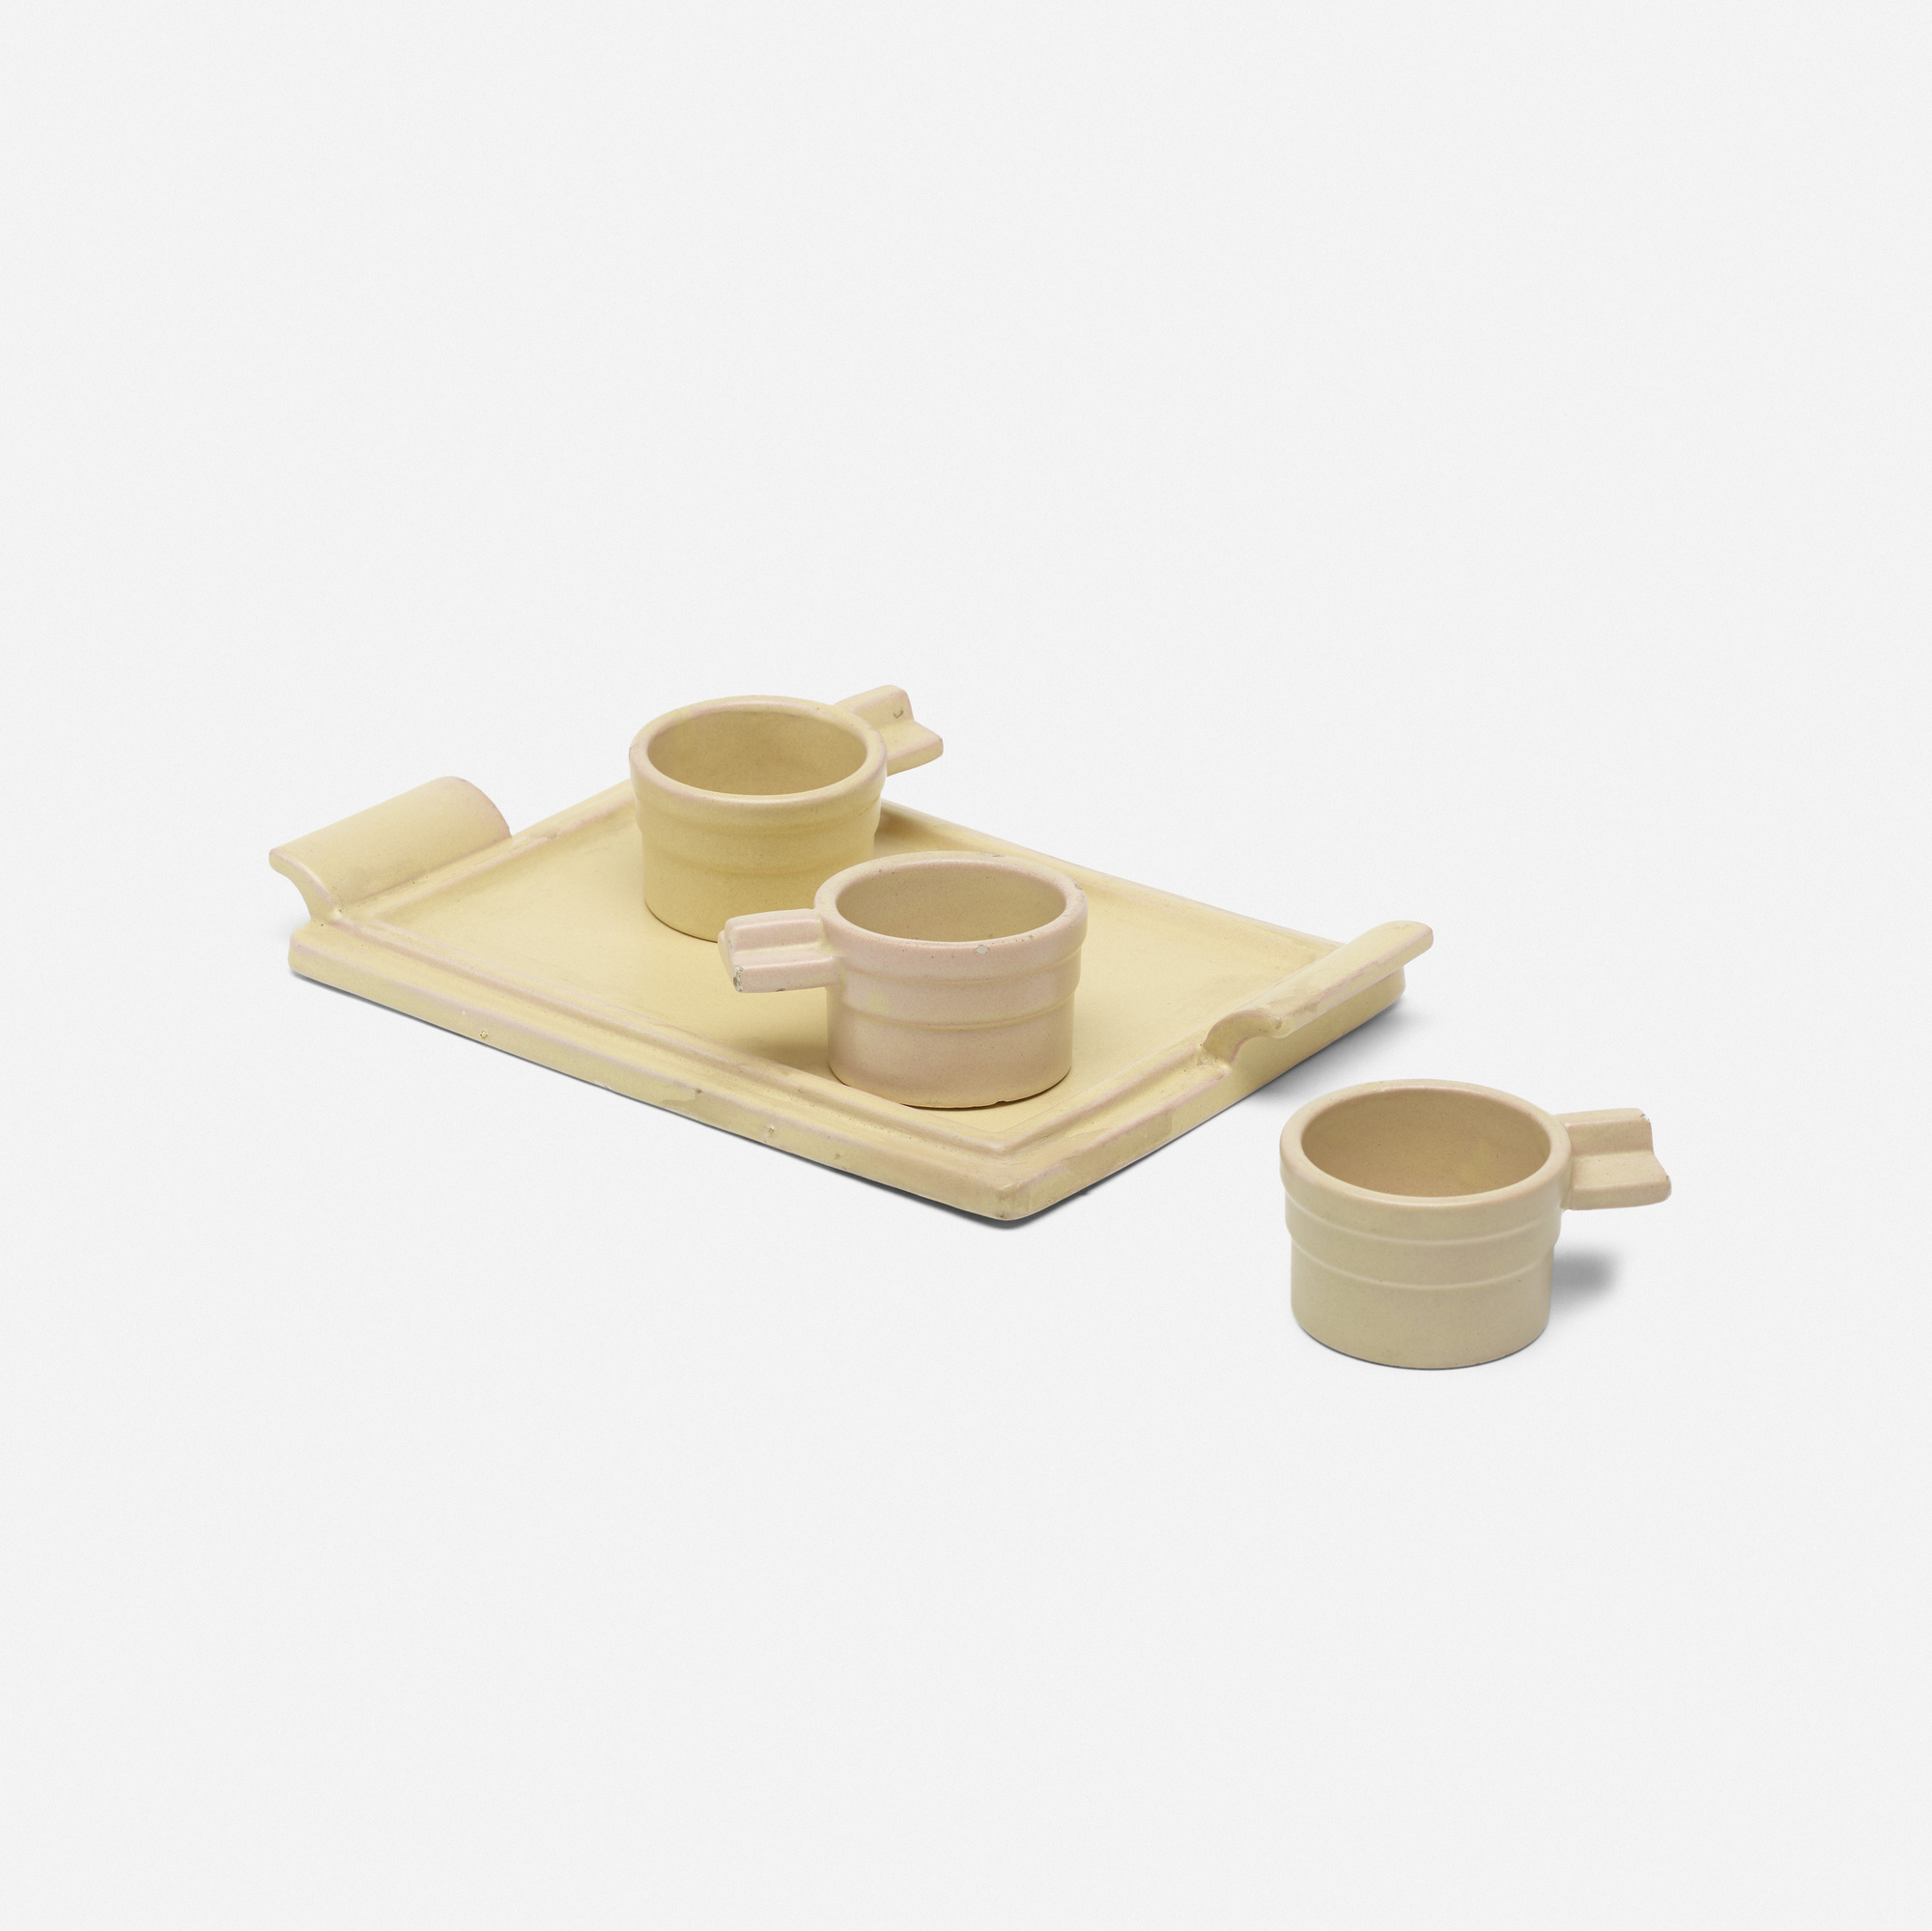 327: Eva Zeisel / tea glass stands and tray (1 of 2)